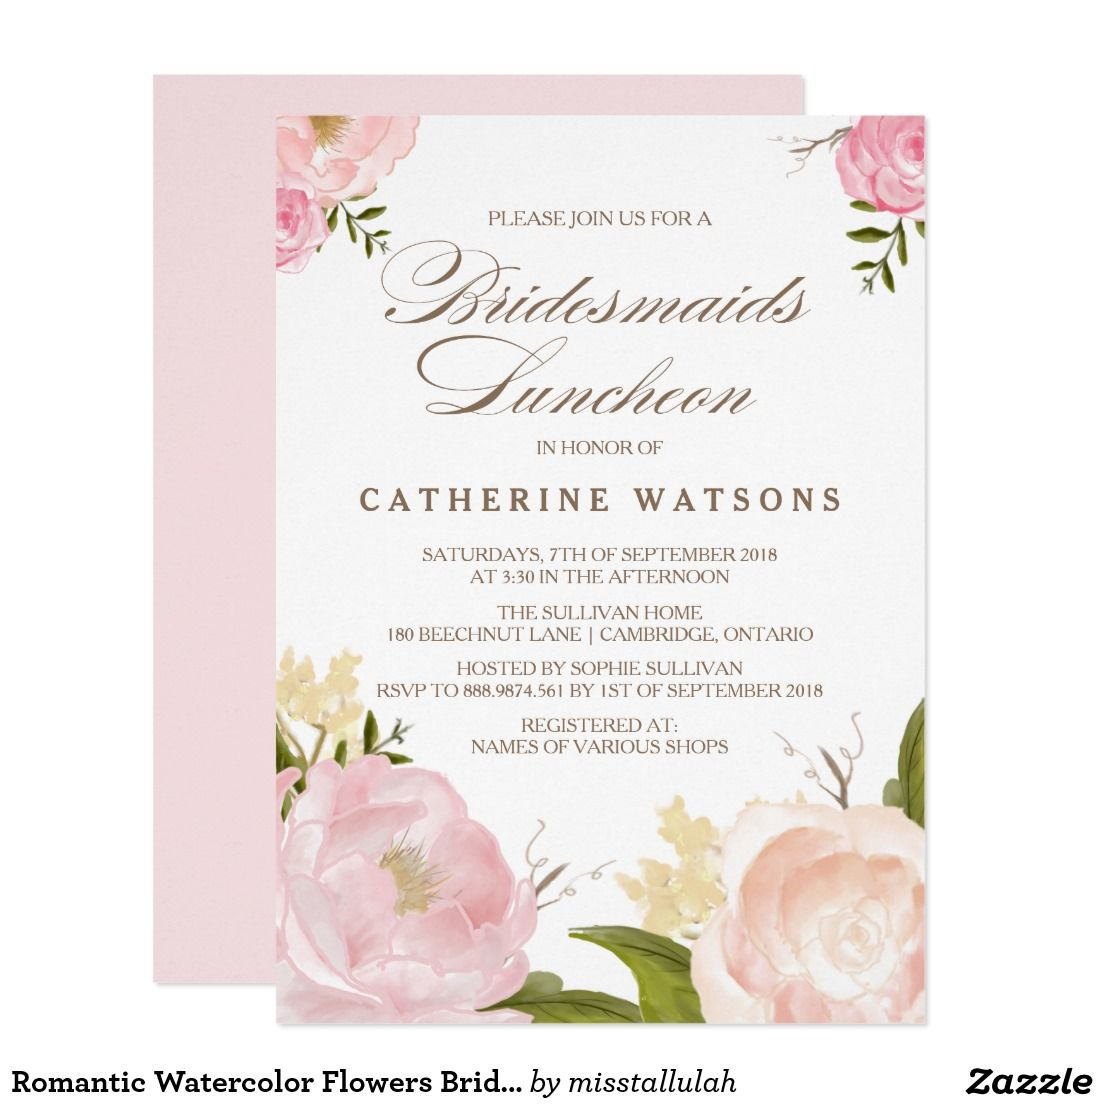 Romantic Watercolor Flowers Bridesmaids Luncheon Invitation